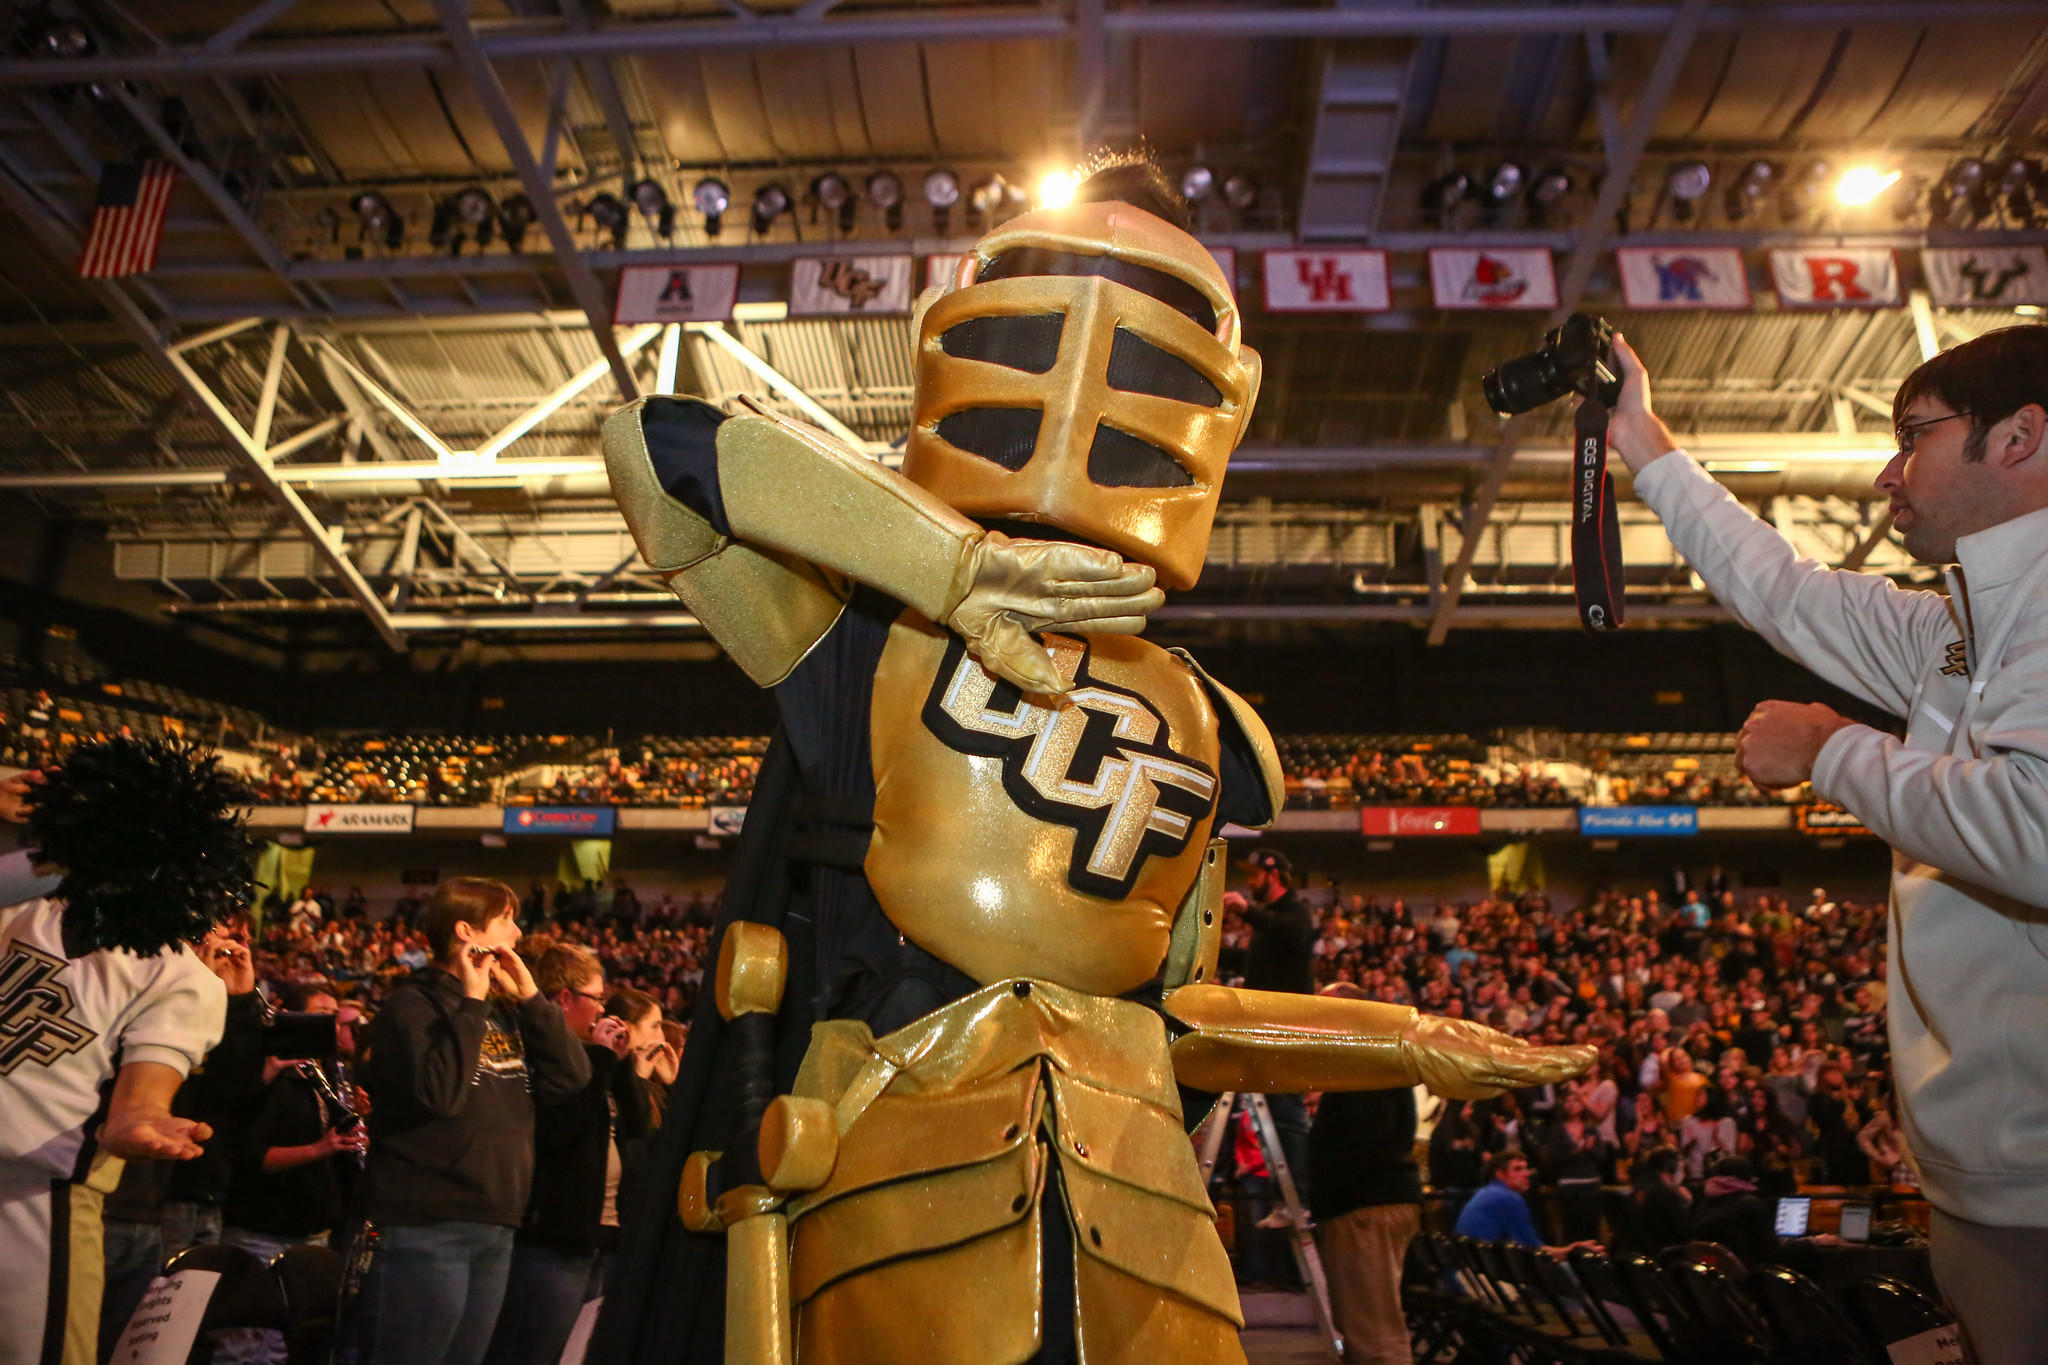 UCF mascot Knightro poses for a photo as fans and alumni pack the CFE arena to celebrate the Knights BCS Fiesta Bowl victory over Baylor in Orlando on Wednesday, January 08, 2014.